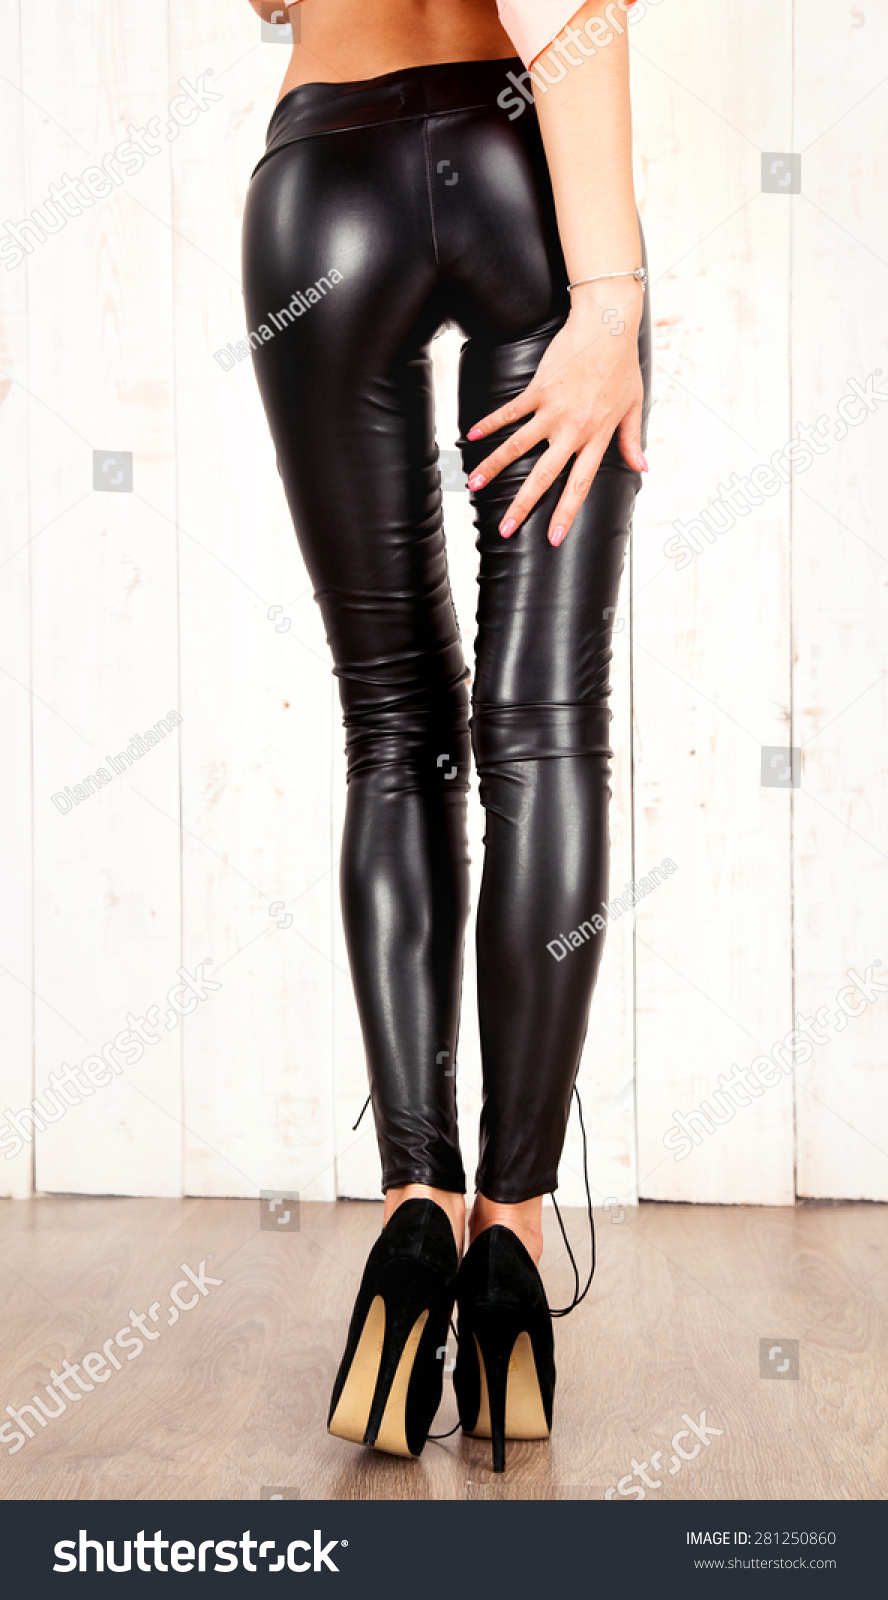 Lady sexy leather pant gallery